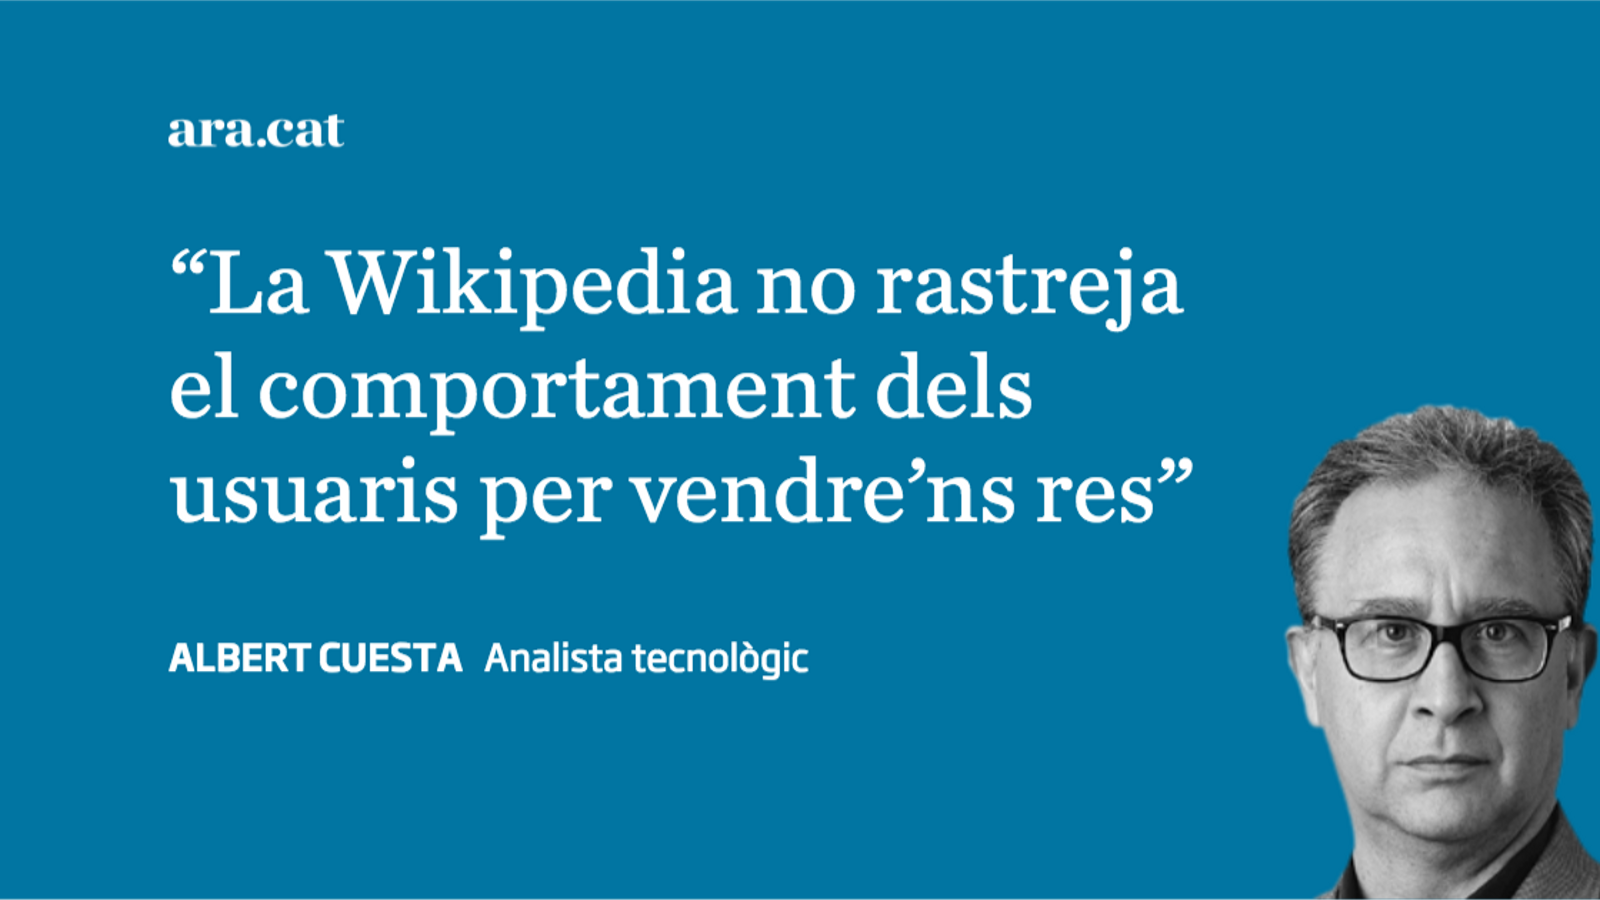 La Wikipedia se'ns ha fet gran